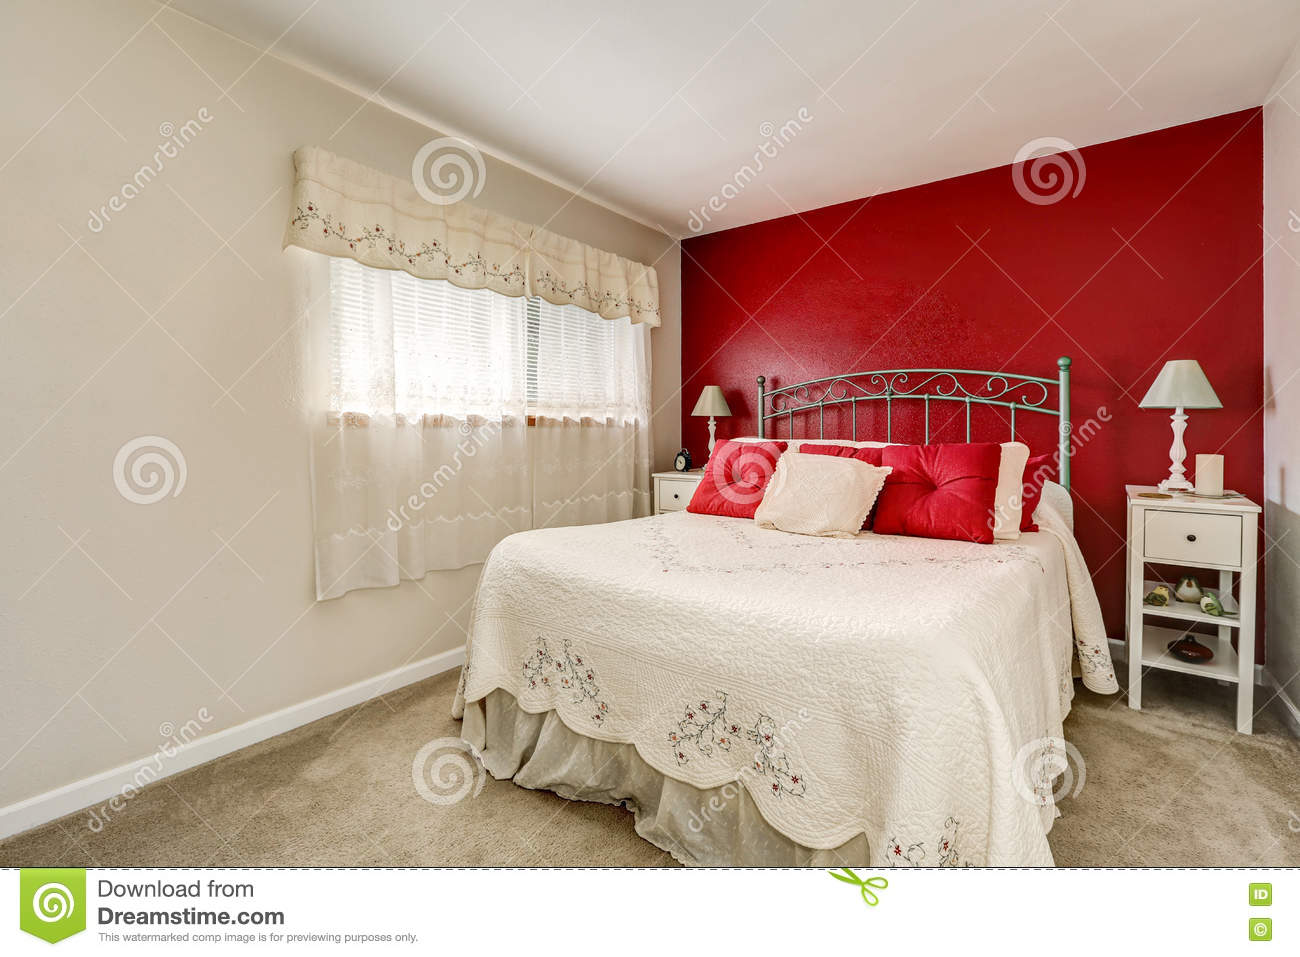 woman lumineux x27 chambre coucher de s avec le mur rouge de contraste photo stock image. Black Bedroom Furniture Sets. Home Design Ideas